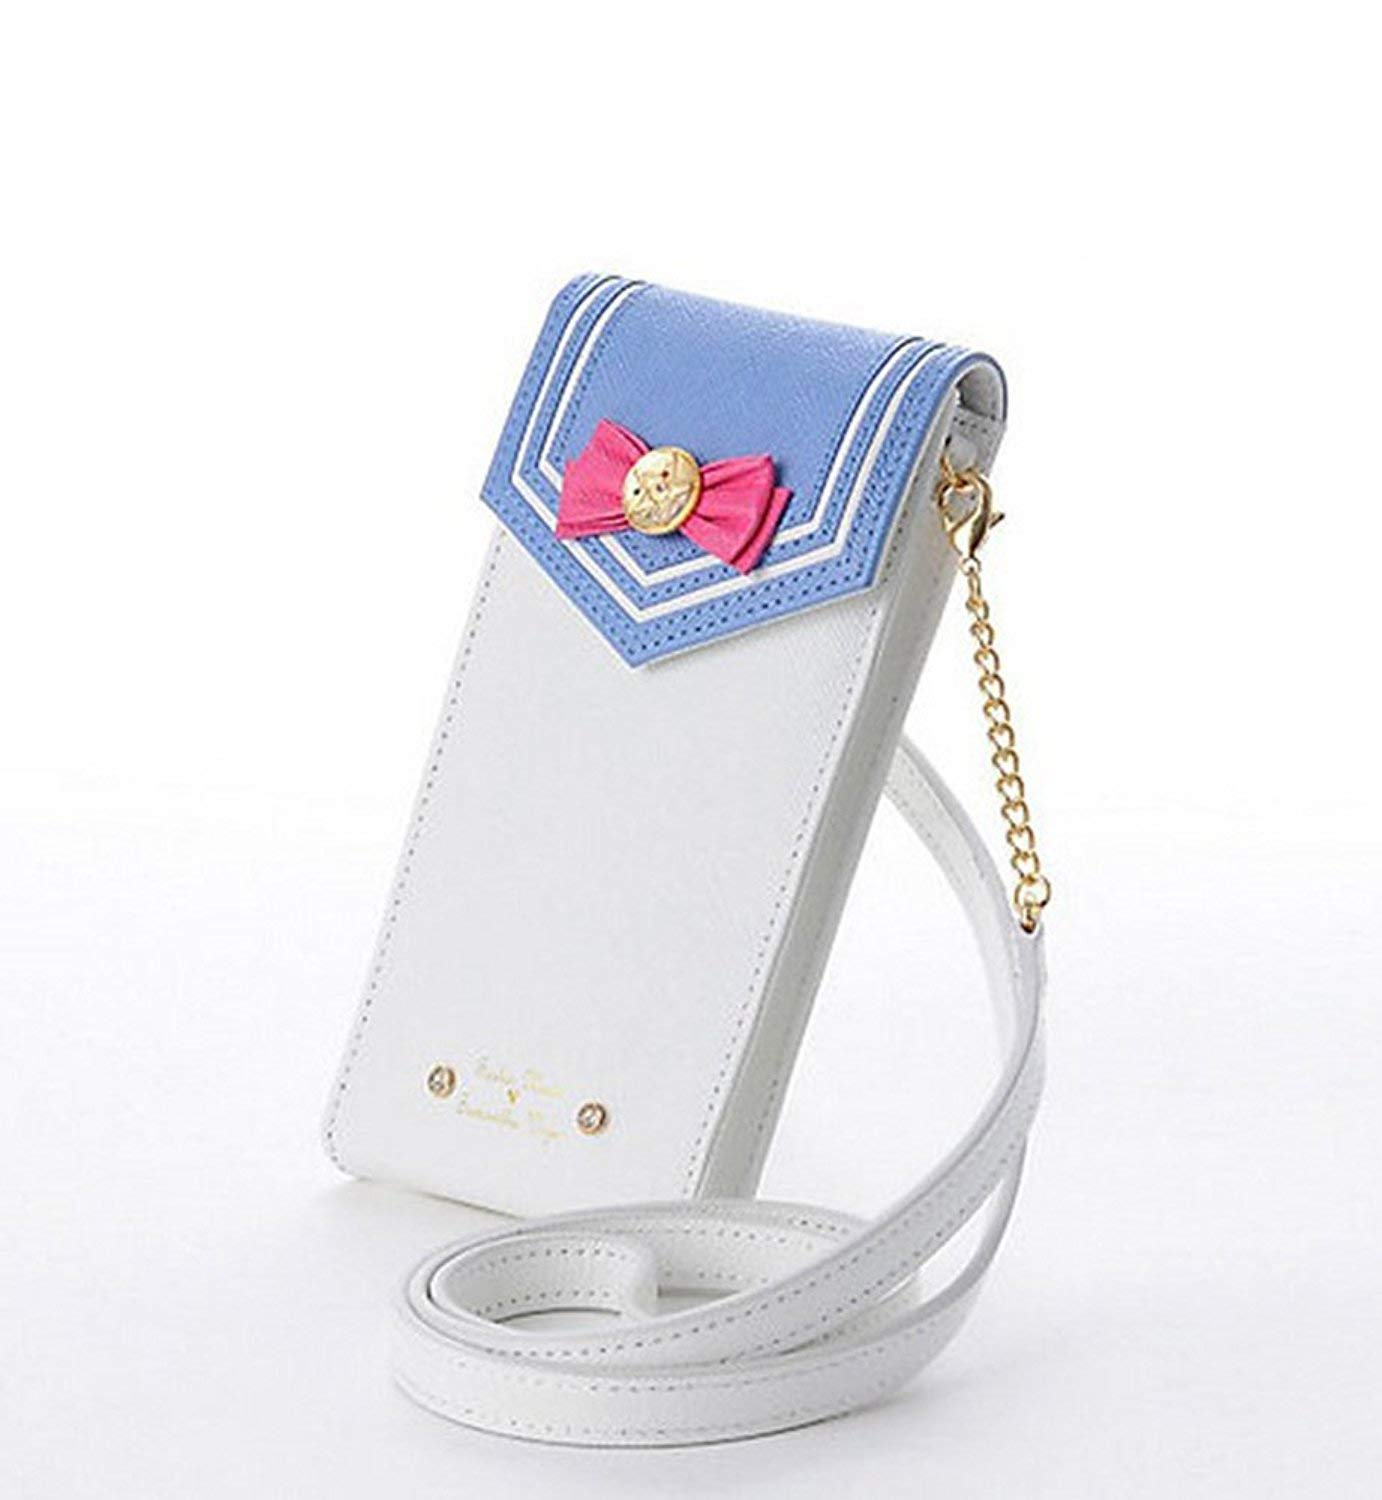 Binghang Sailor Moon Cell Phone Case Wallet Cute Cross-Body Bag Leather Wallets for Women